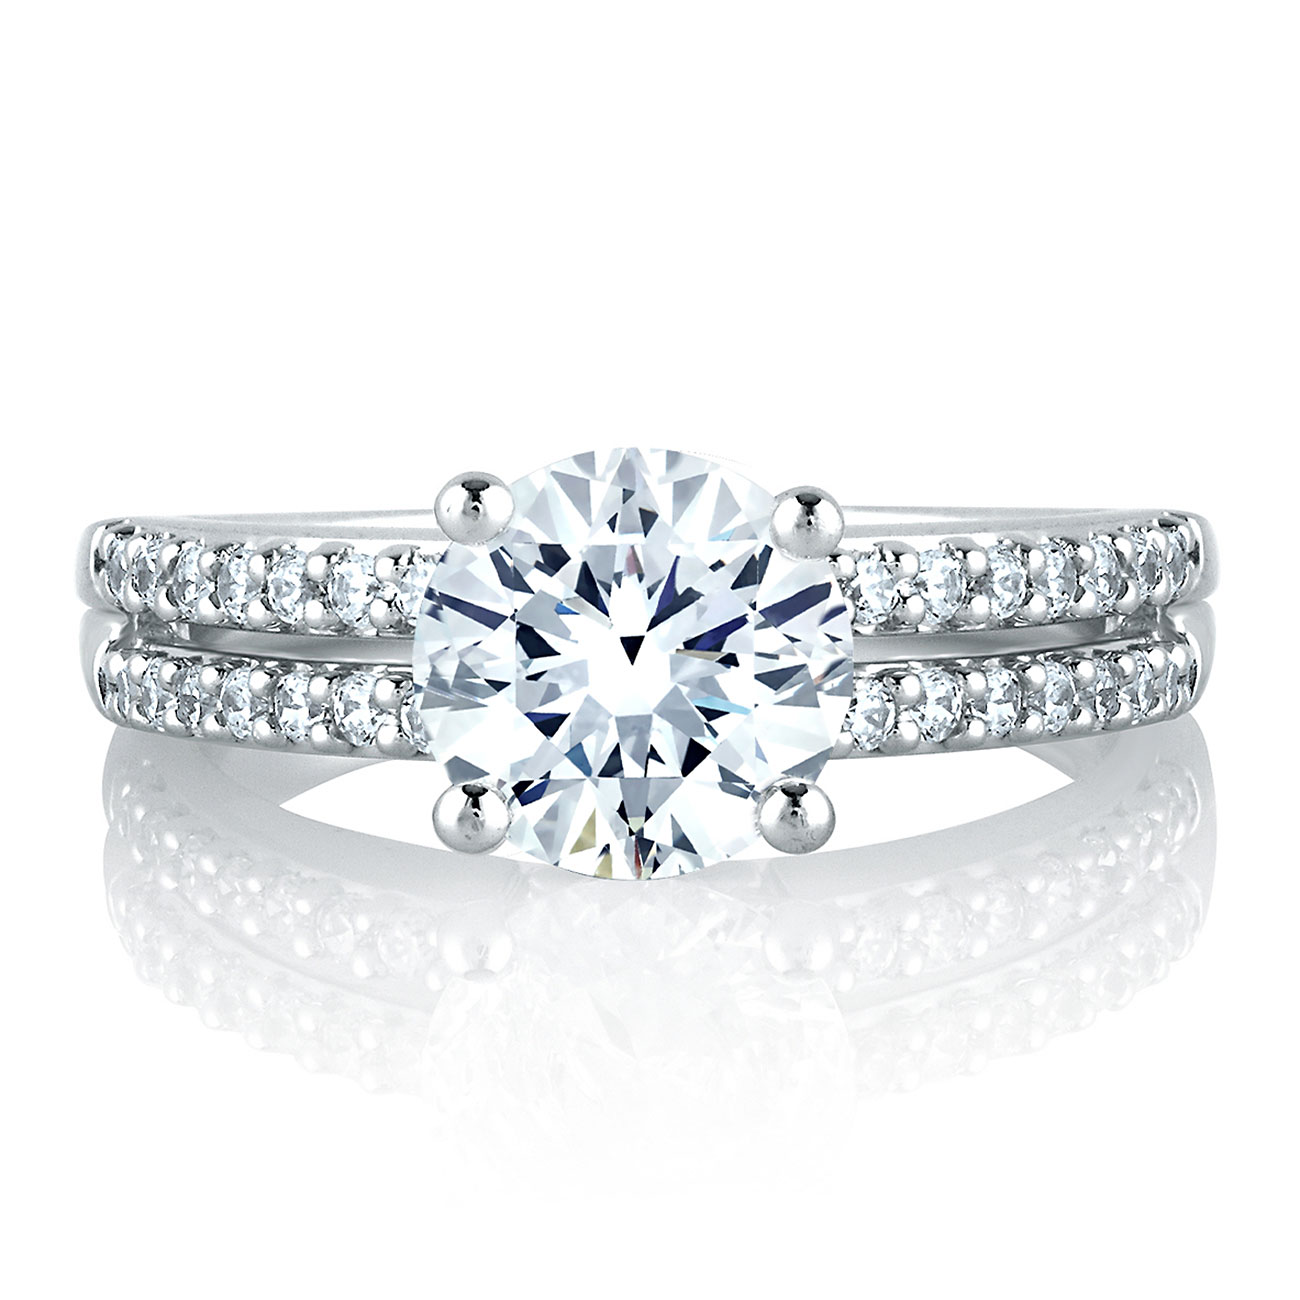 A Jaffe 18 Karat Diamond Engagement Ring MES103 Alternative View 2